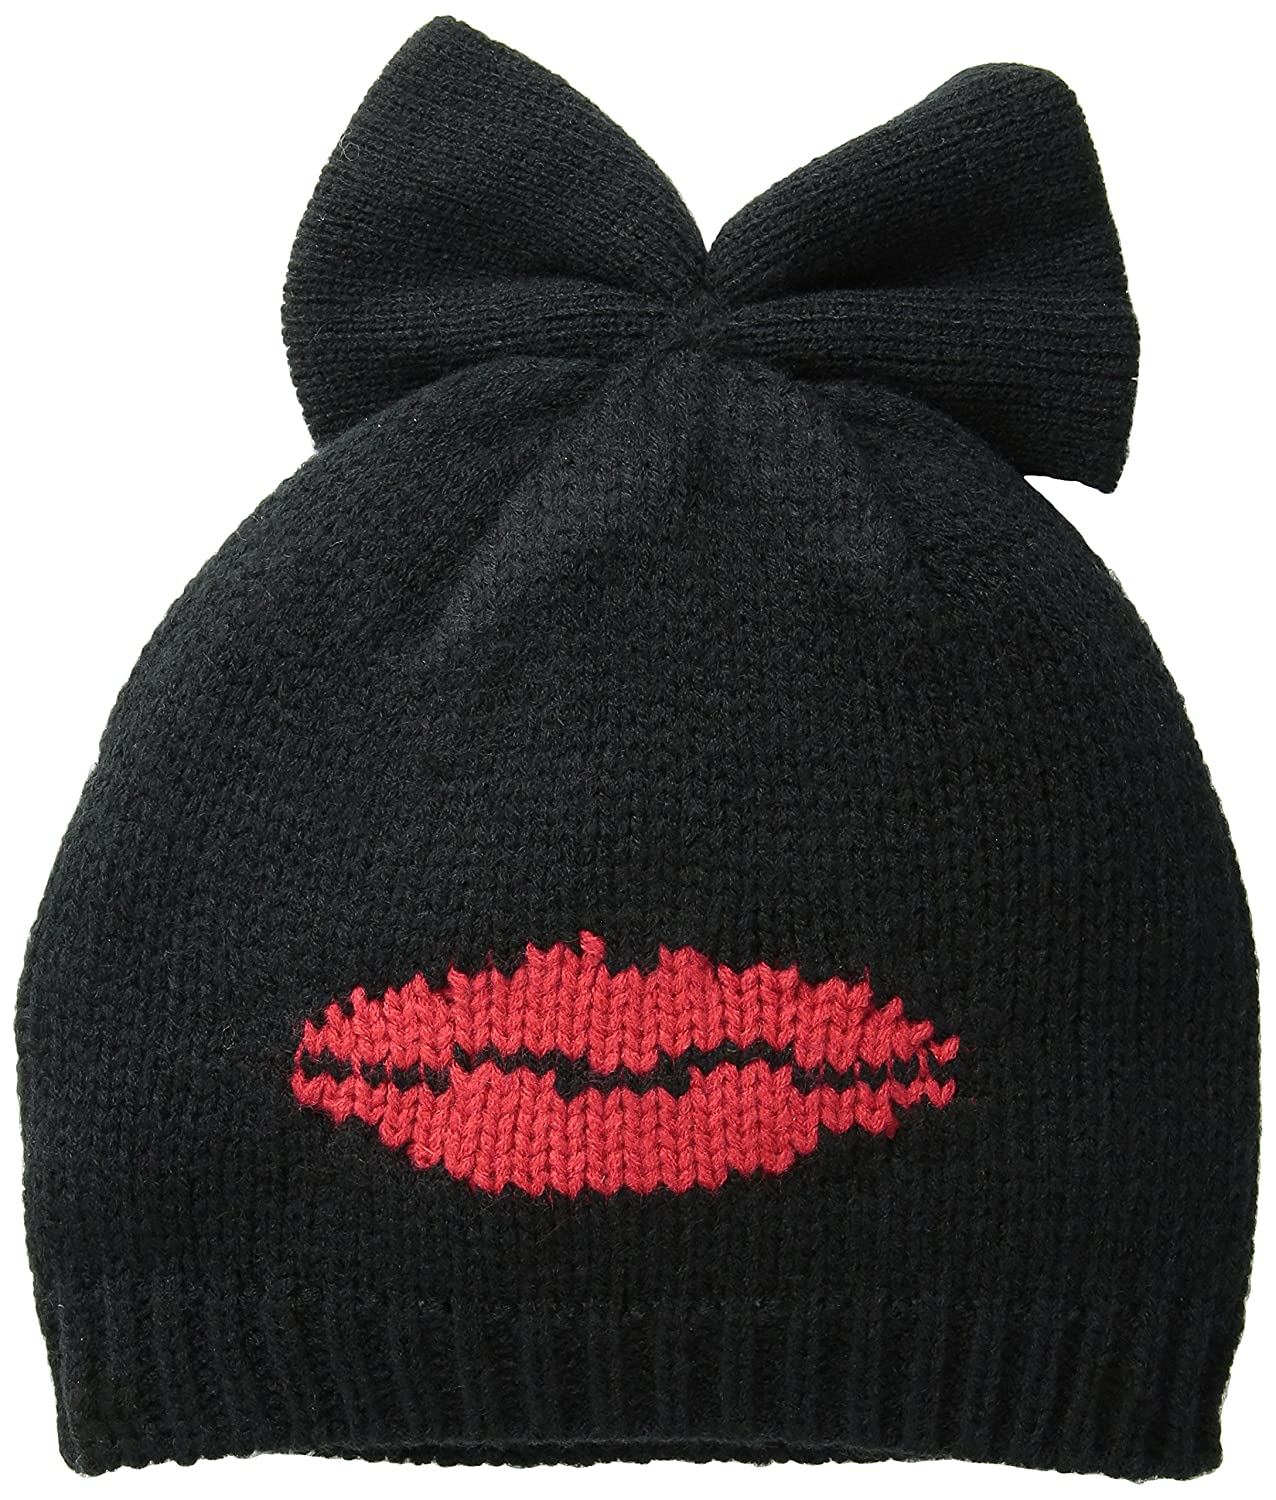 4960a4d90a5 Buy betsey johnson womens kiss and tell bow beanie hat red one size online  at low